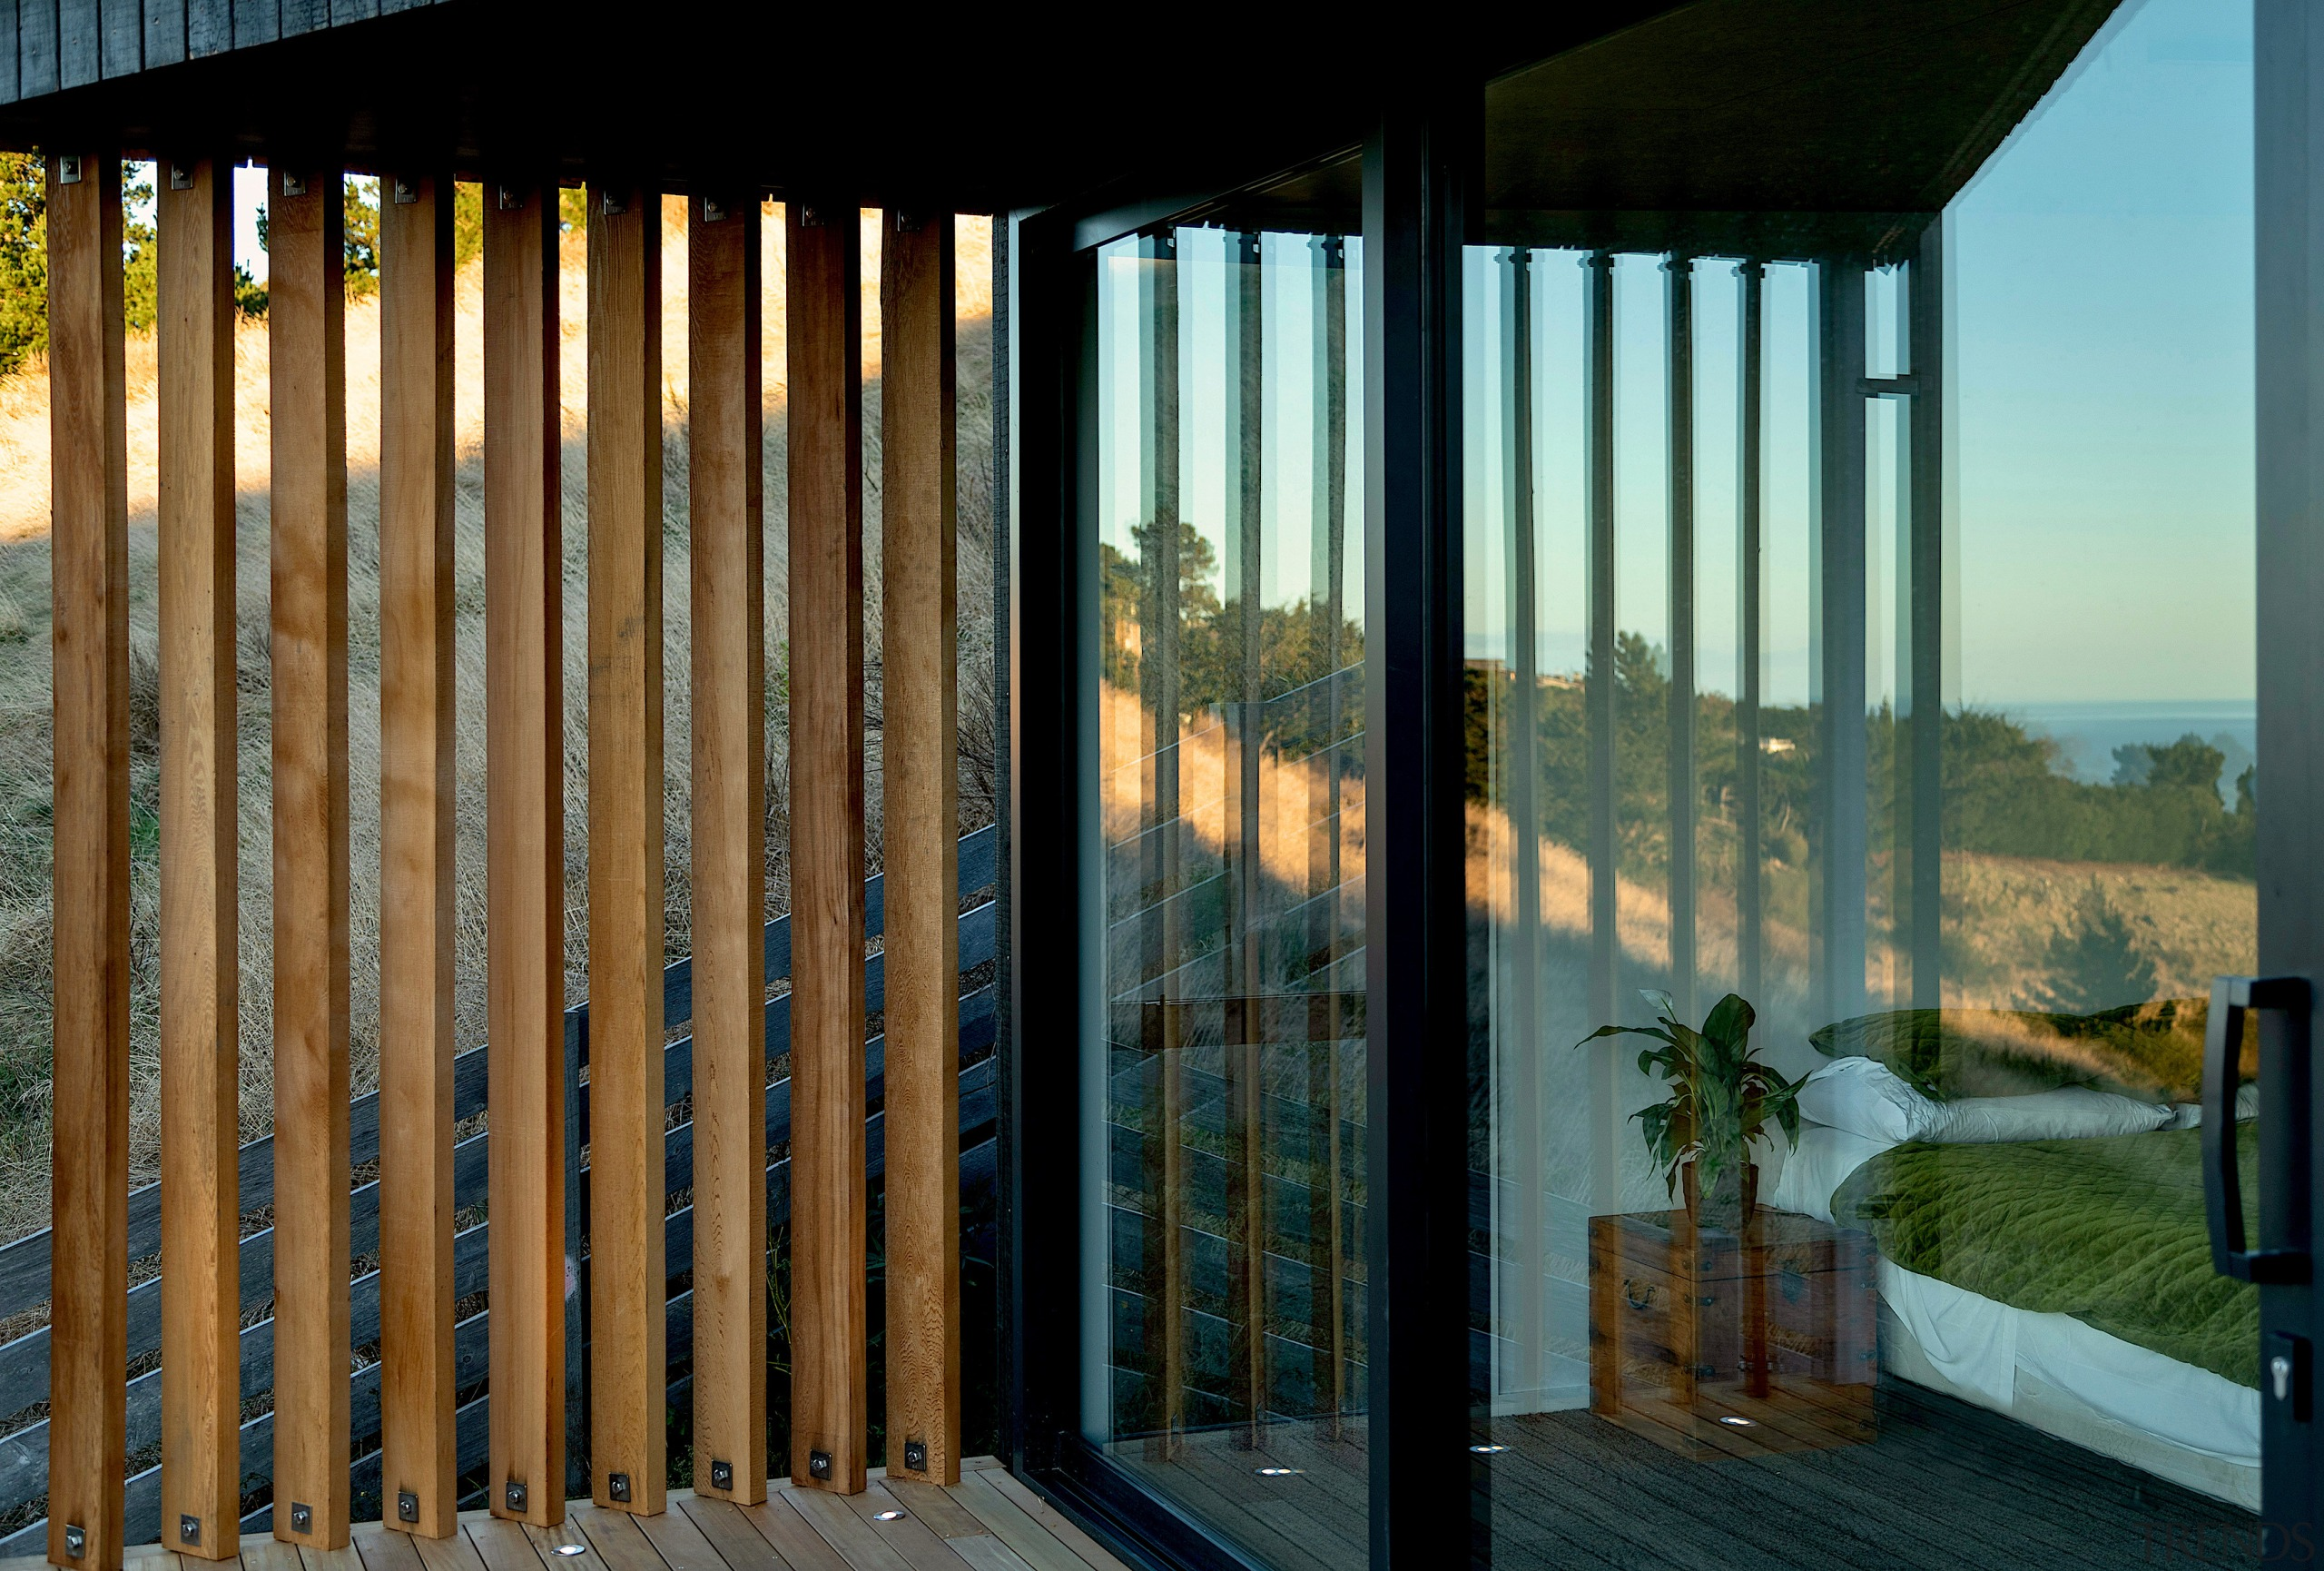 Wood screens provide strategic privacy and add to